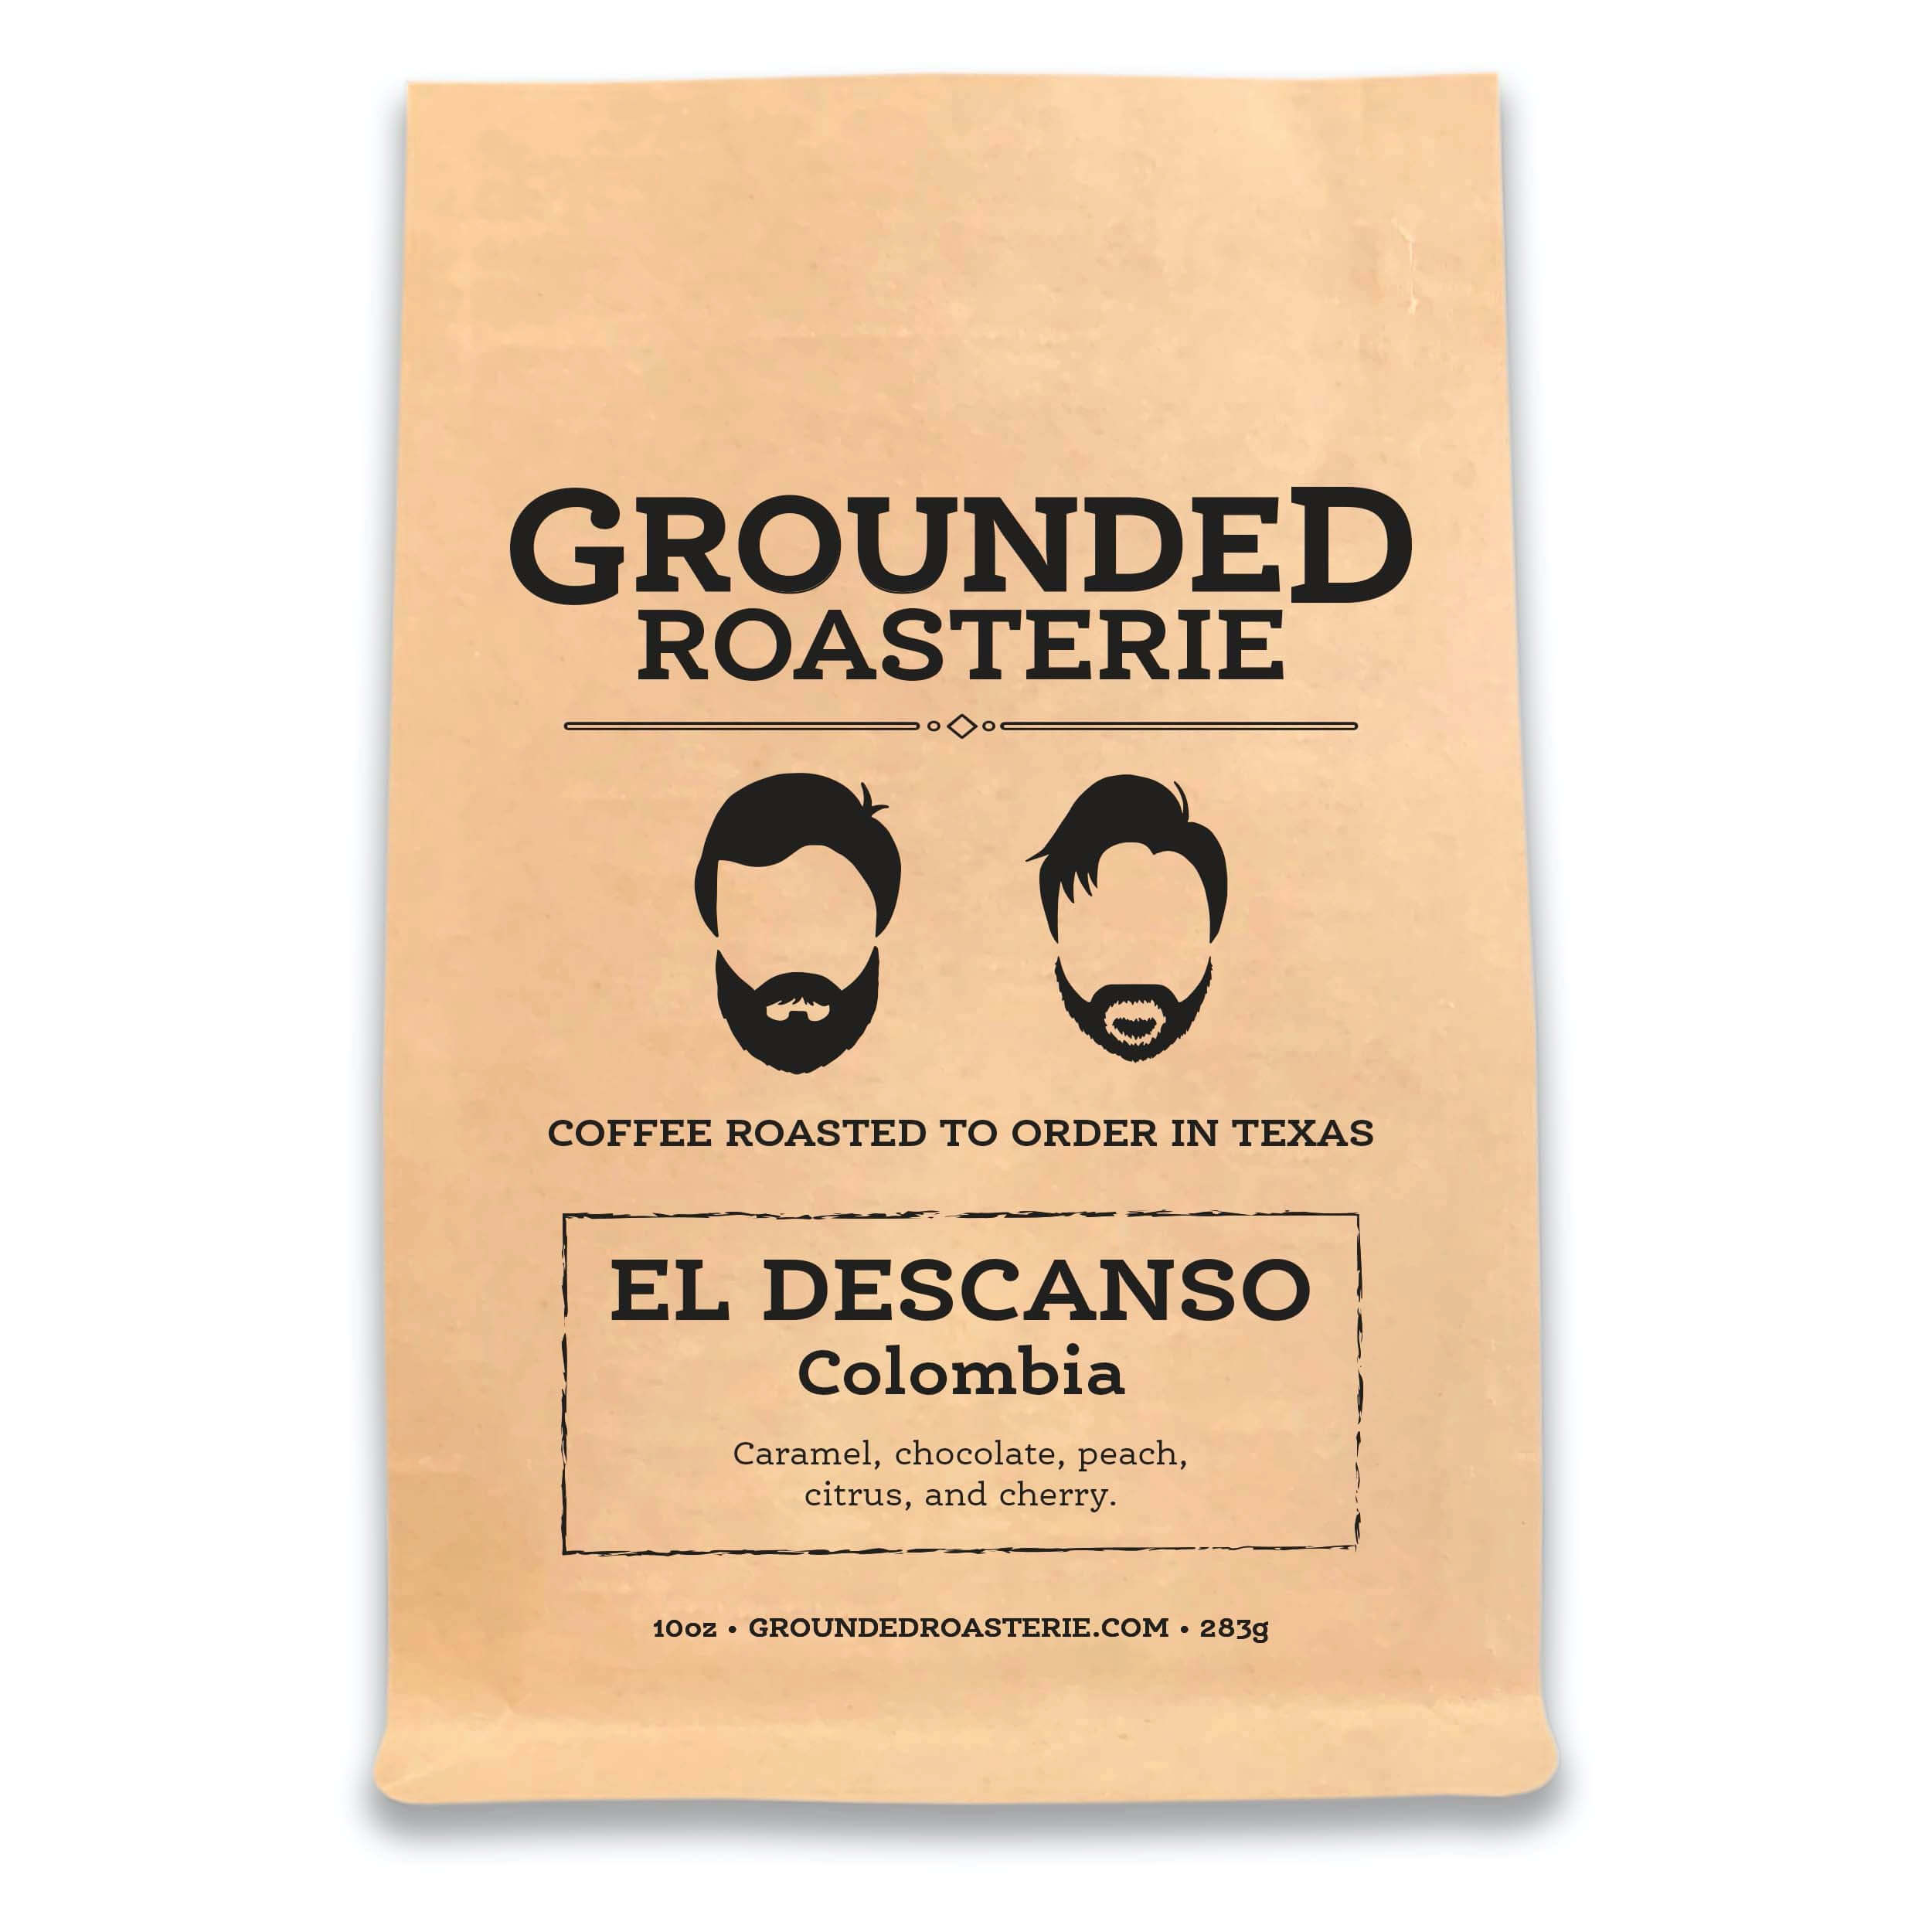 Colombia El Descanso from Grounded Roasterie